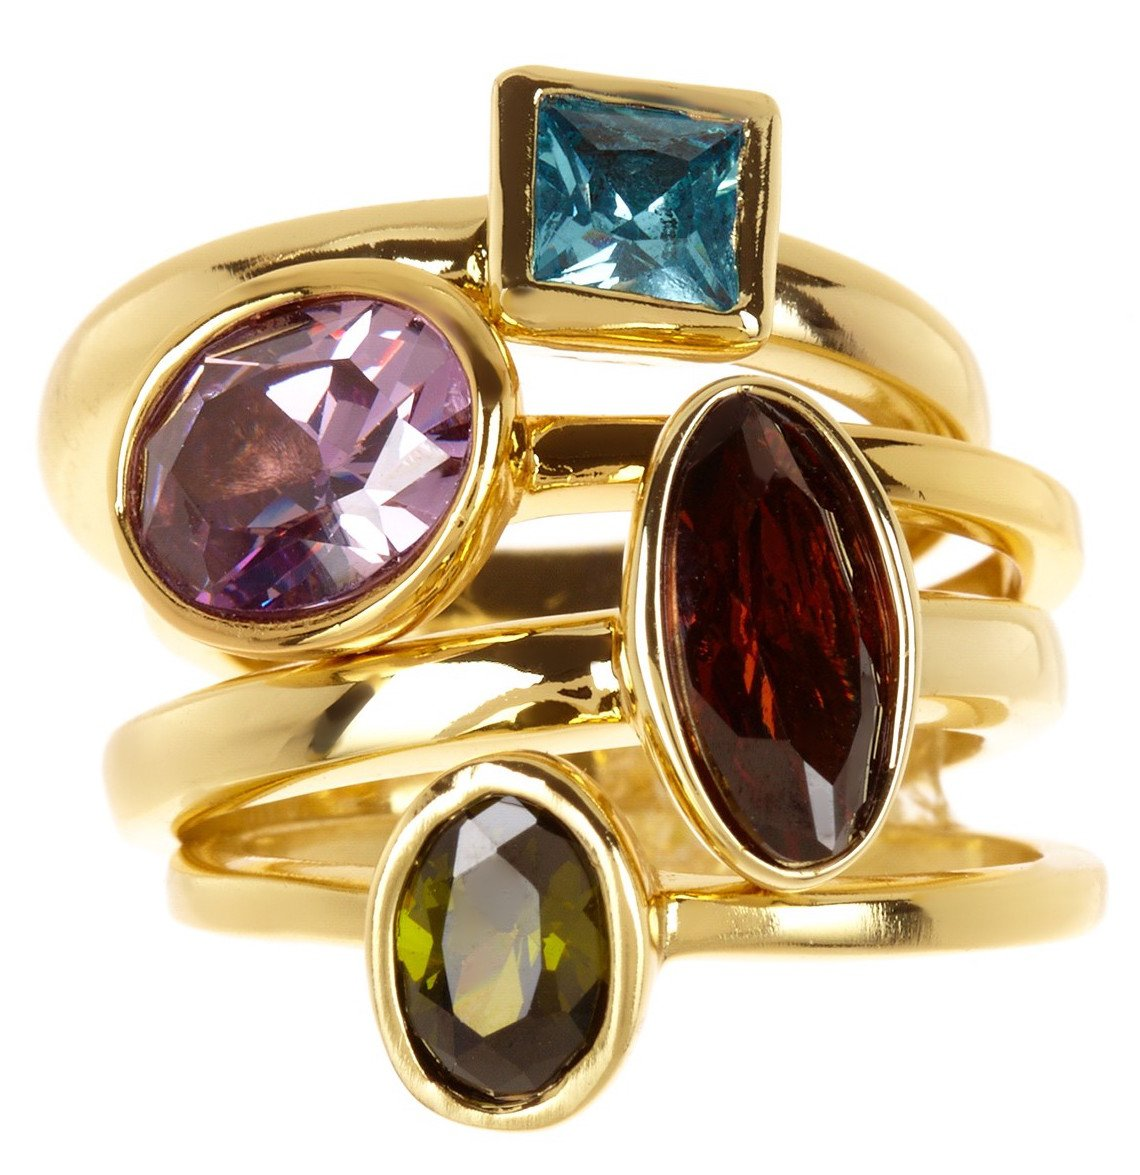 CZ Wholesale Gemstone Jewelry Stackable Ring Set (Size 5) by Gemaholique